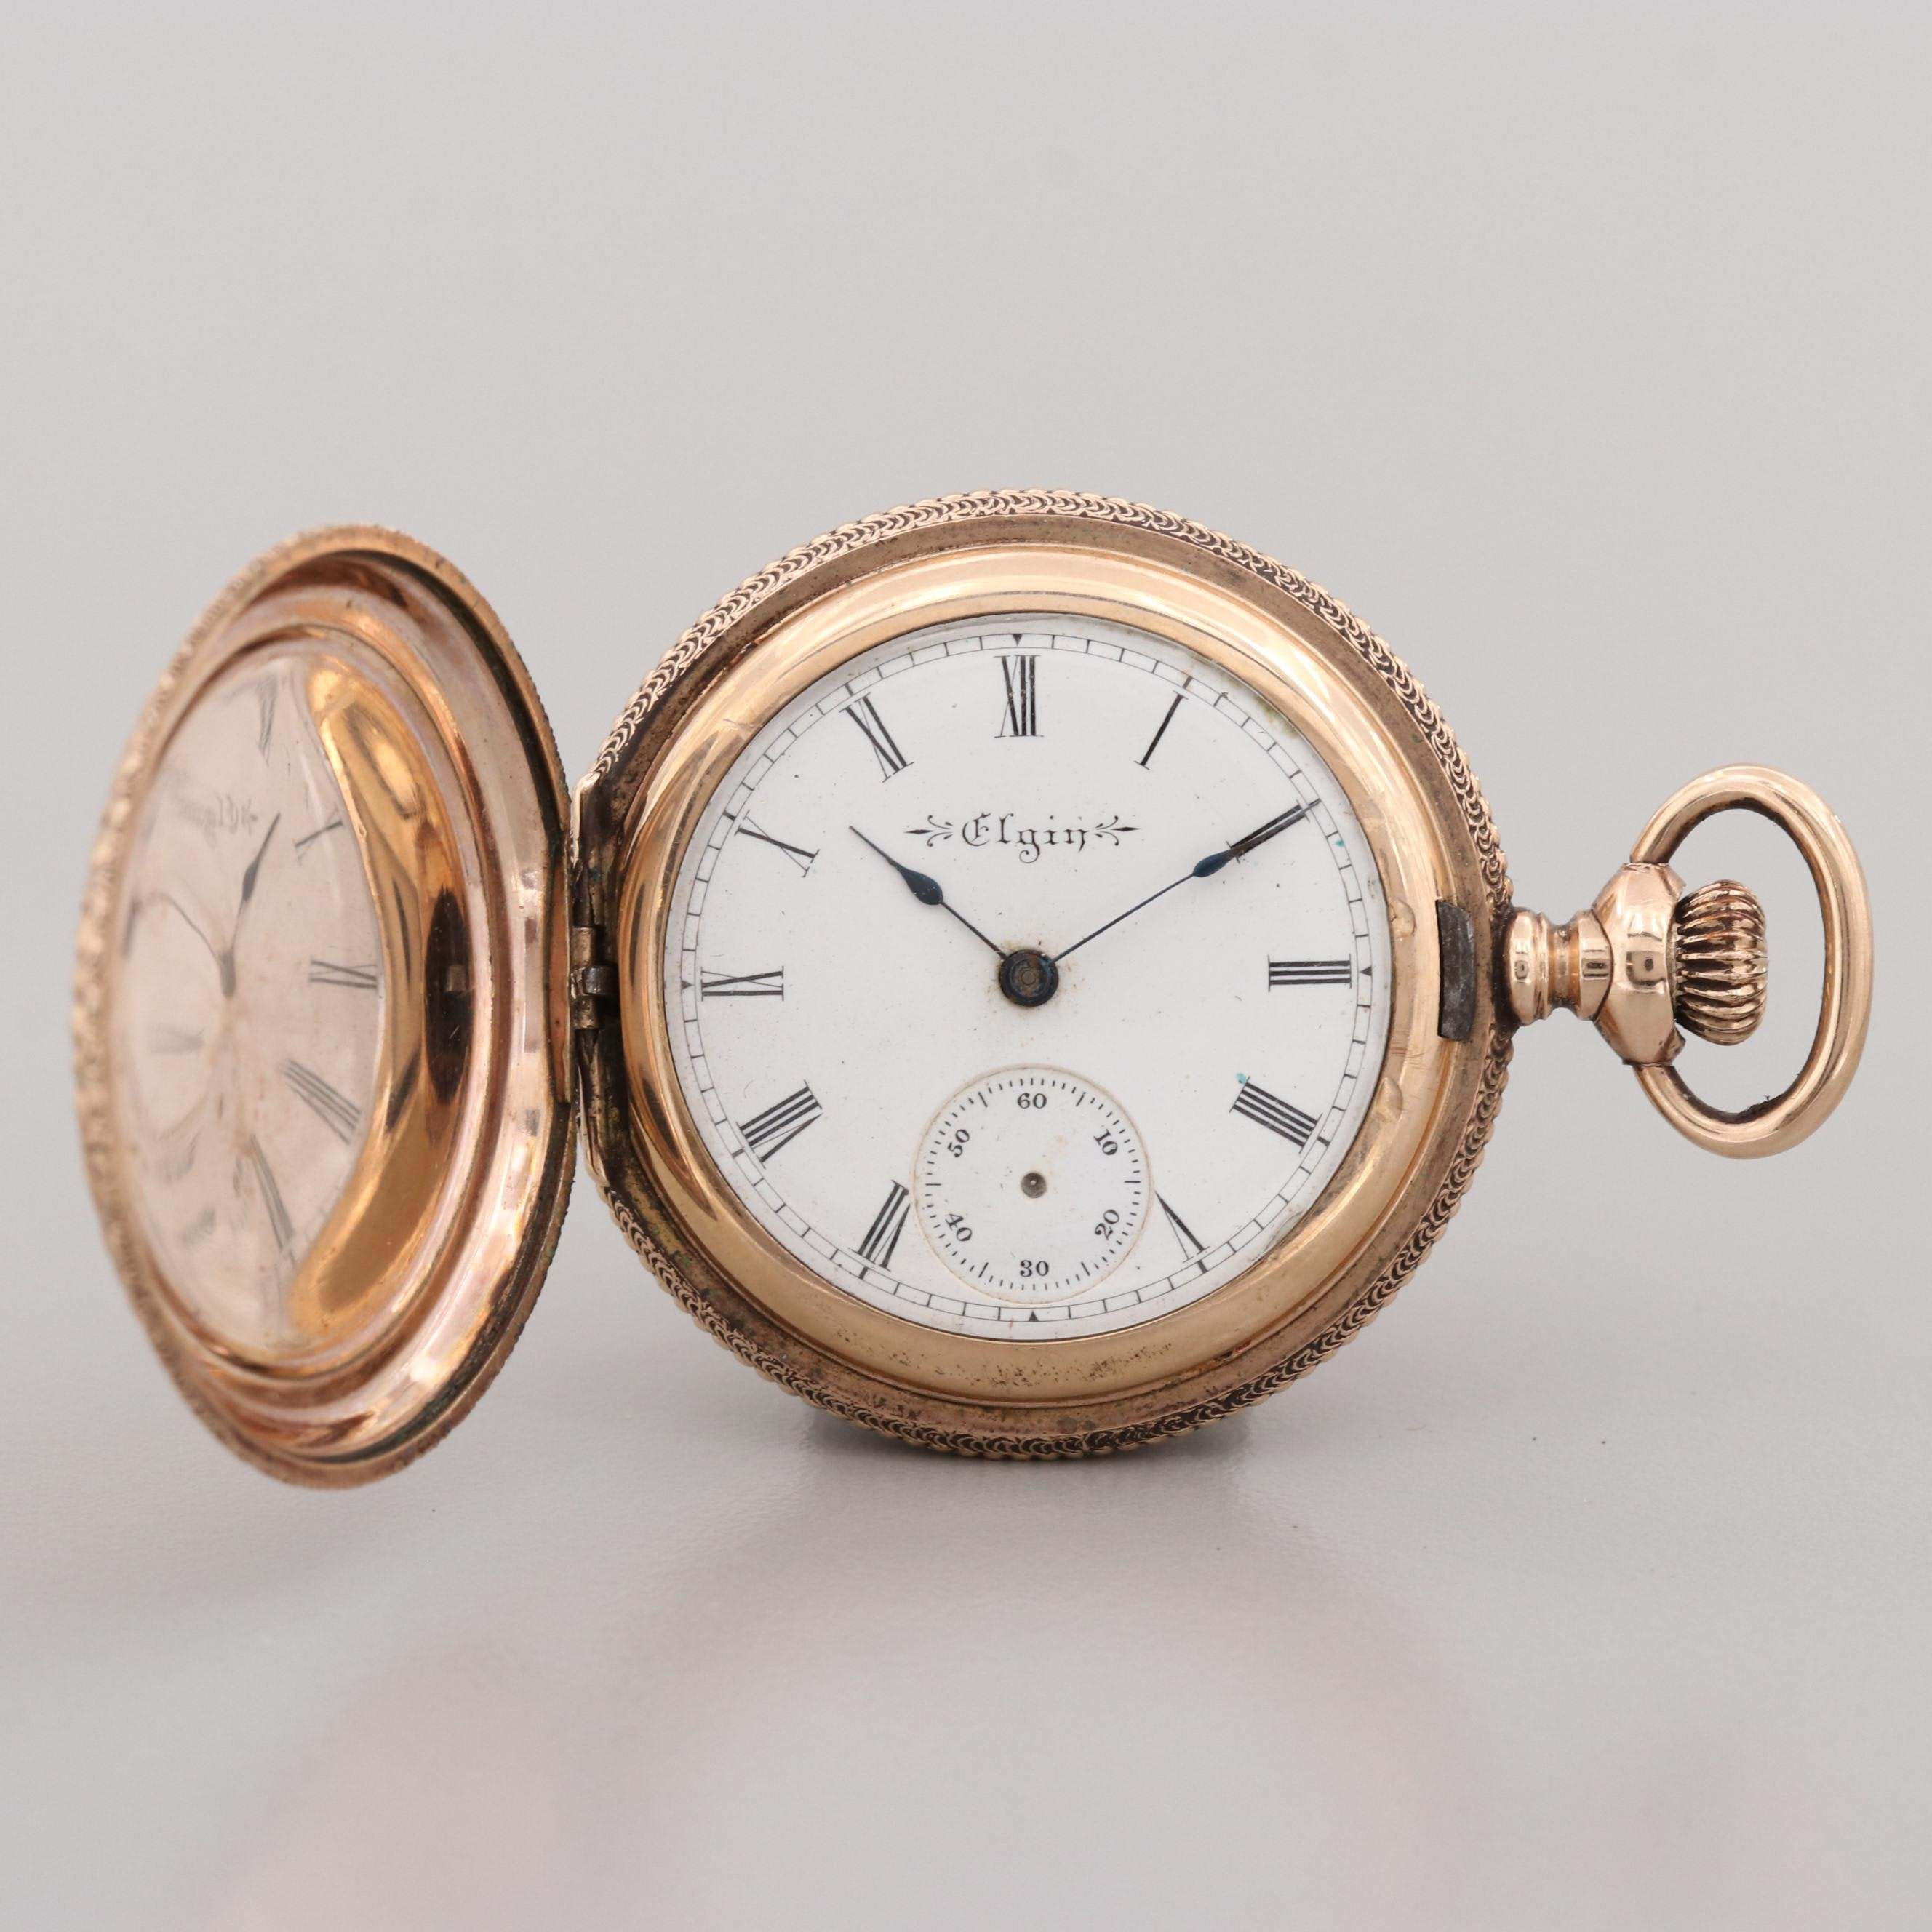 Elgin Gold Filled Pocket Watch, 1899